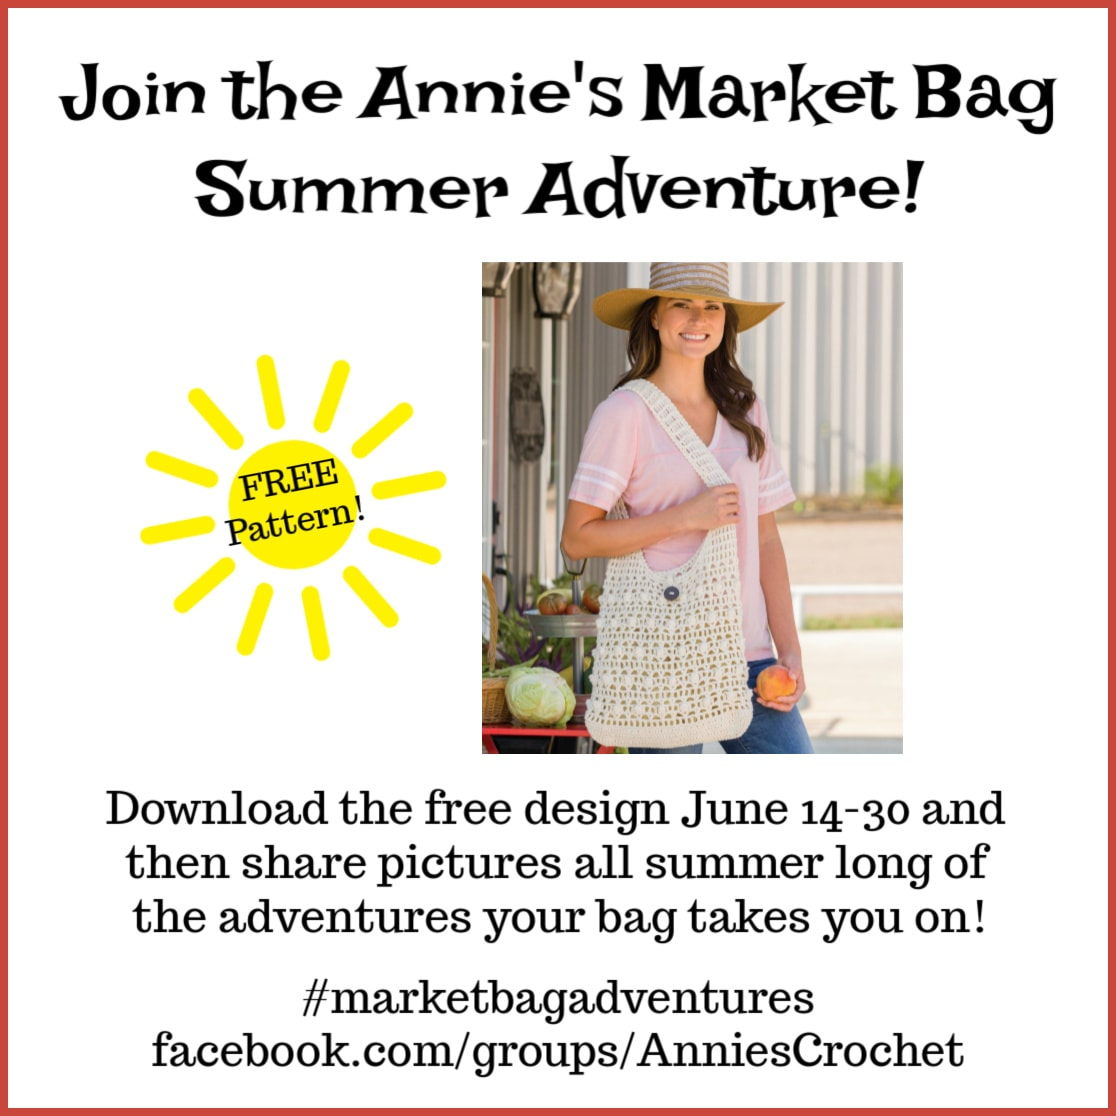 I thought it could be fun to join Annie\'s Online Market Bag Adventures this summer. Would you like to join me on this Online Adventure? #marketbagadventures #annies